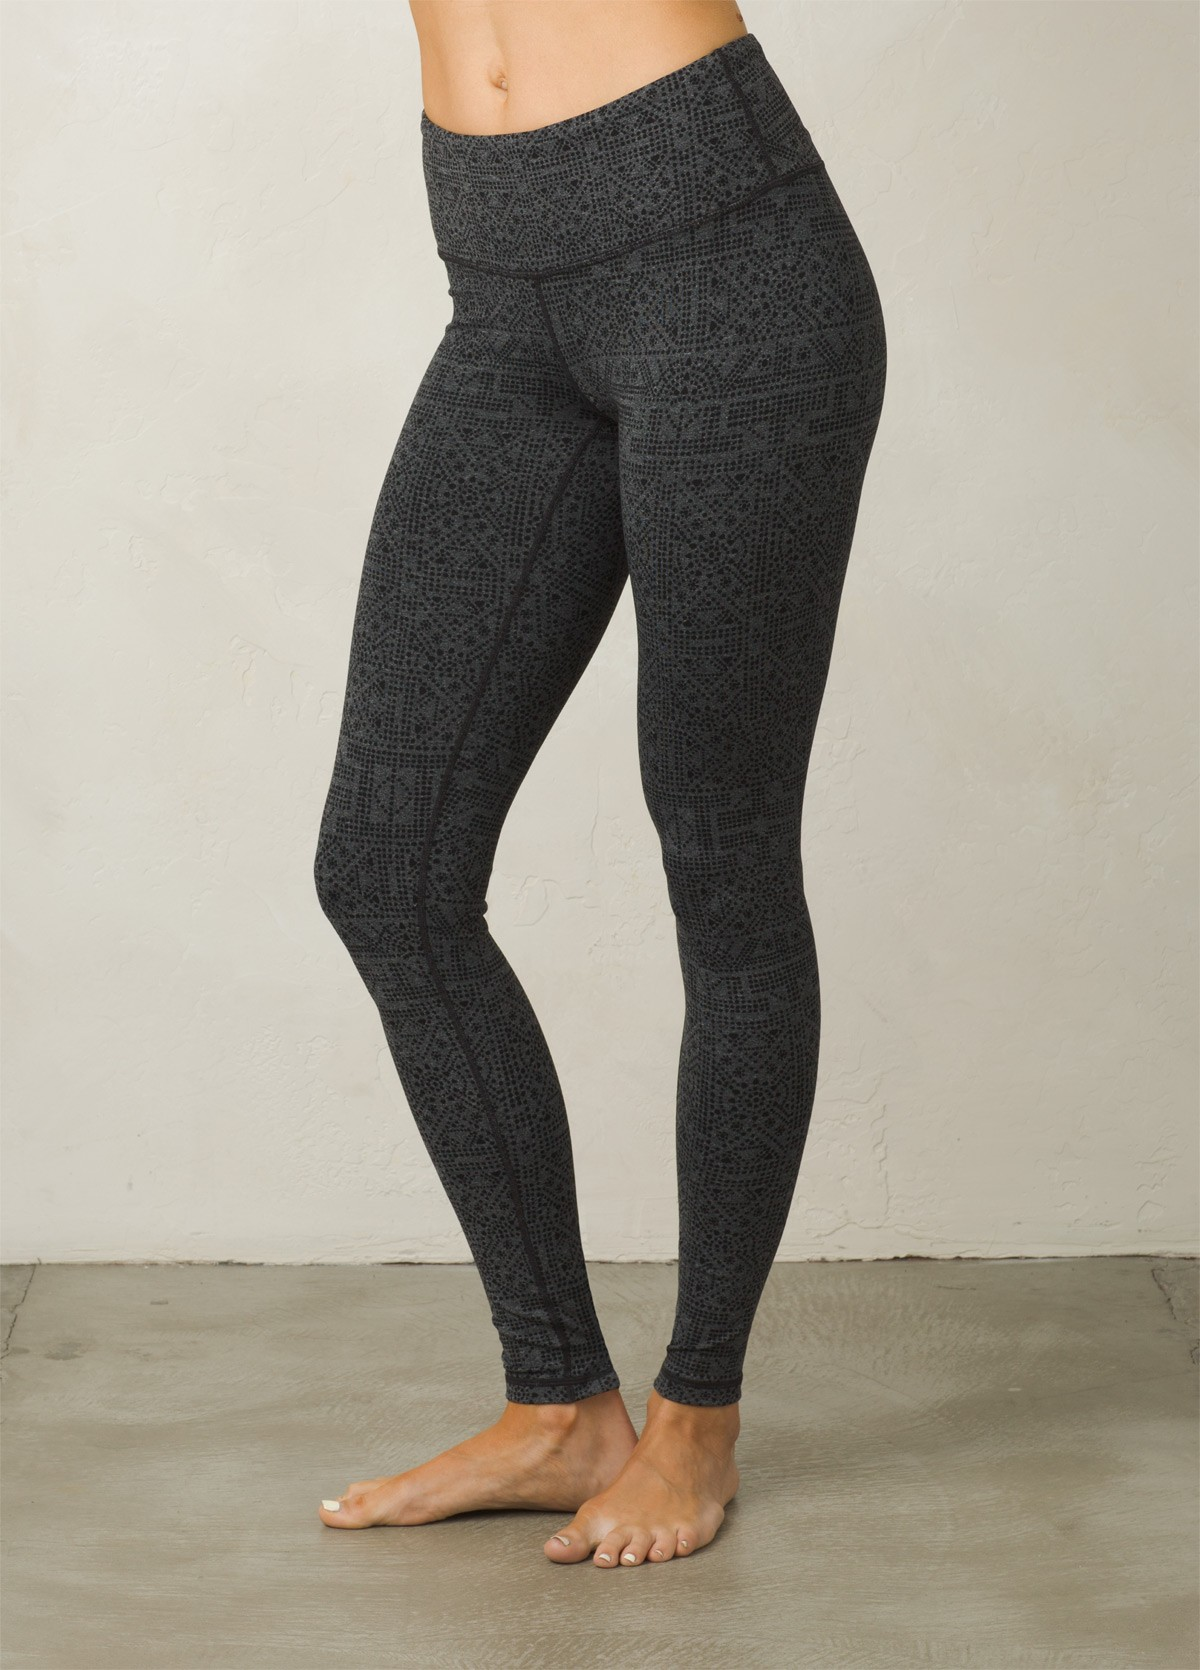 yoga wear charcoal heather mosaic pillar legging | women u003e bottoms u003e yoga pants ... lxswvst